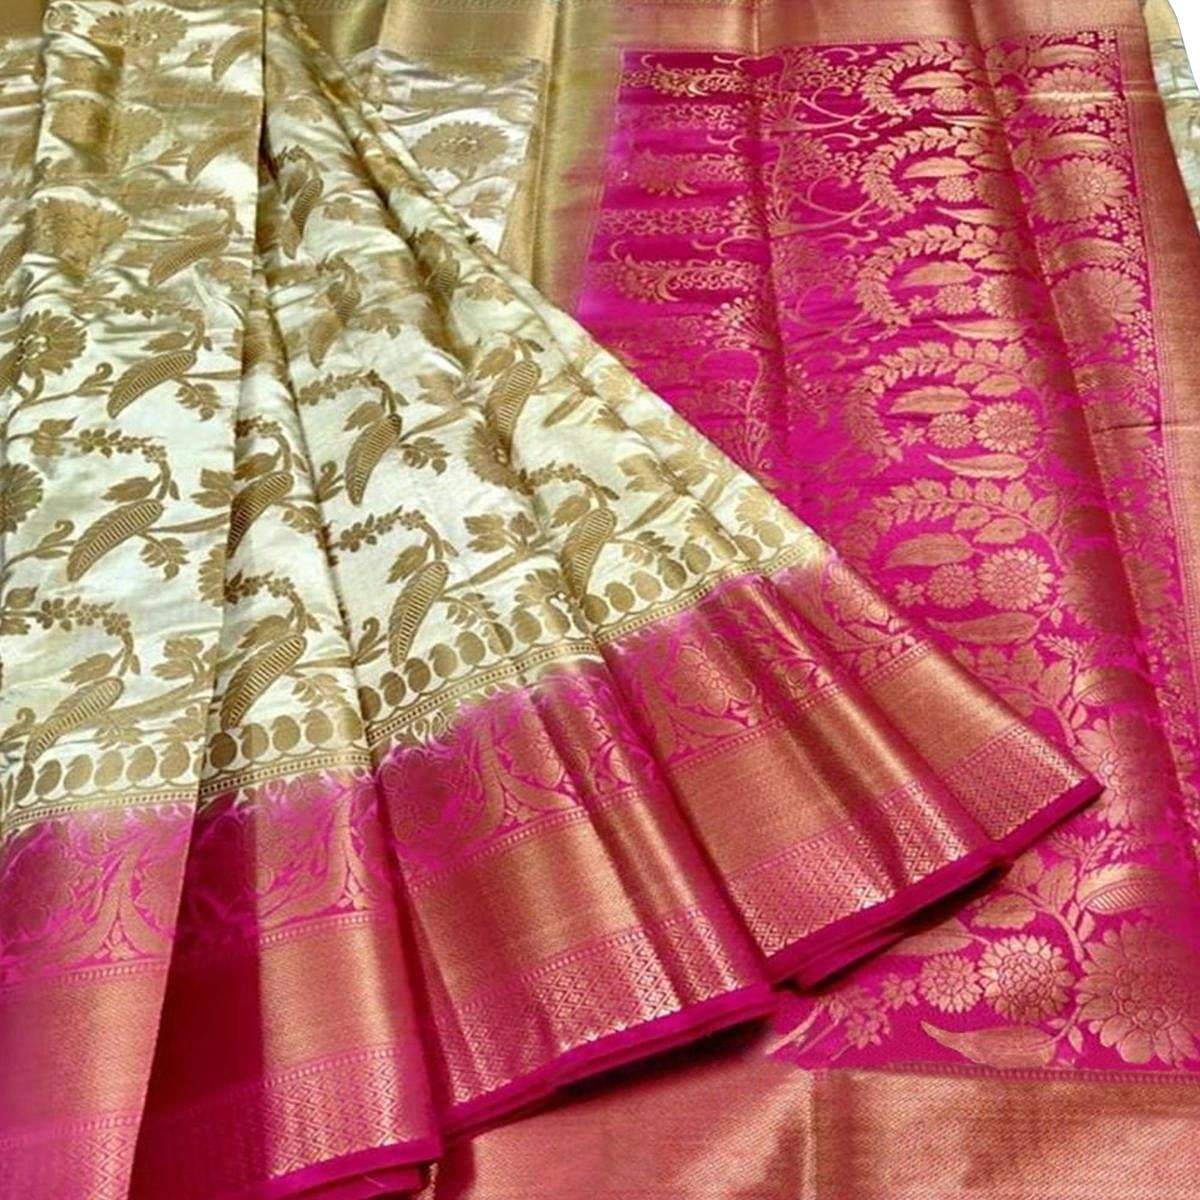 Preferable White Colored Festive Wear Woven Silk Blend Saree